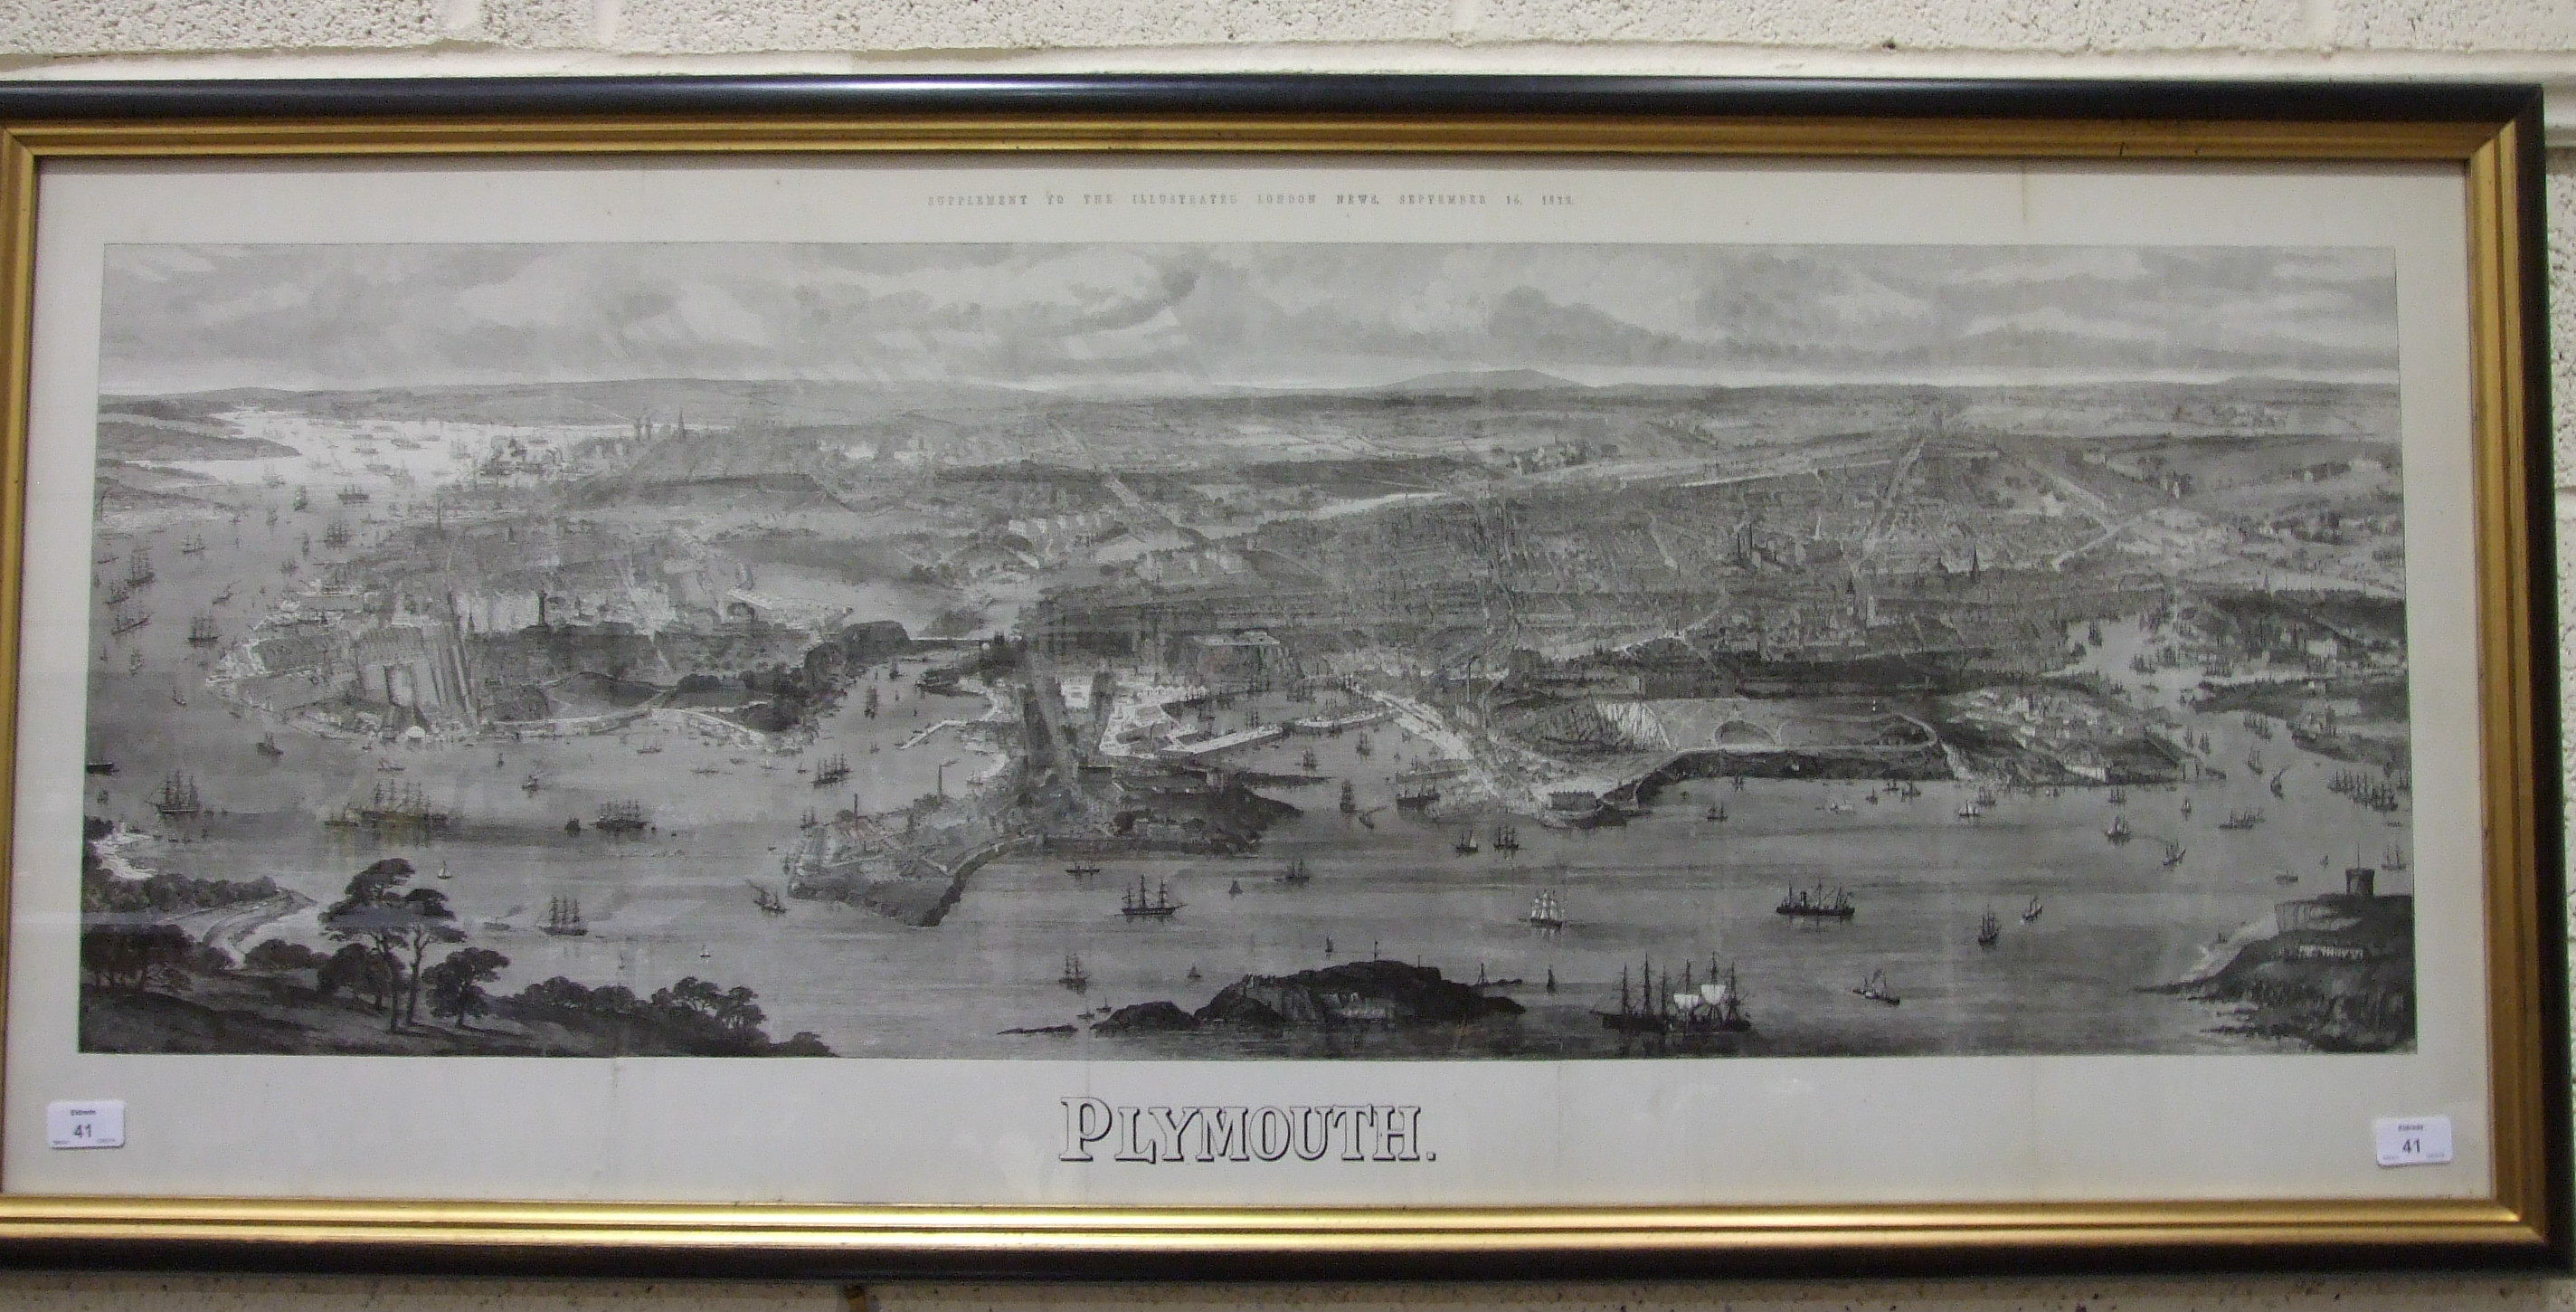 Lot 41 - A framed print, 'Panoramic View of Plymouth', a supplement to The Illustrated London News, September